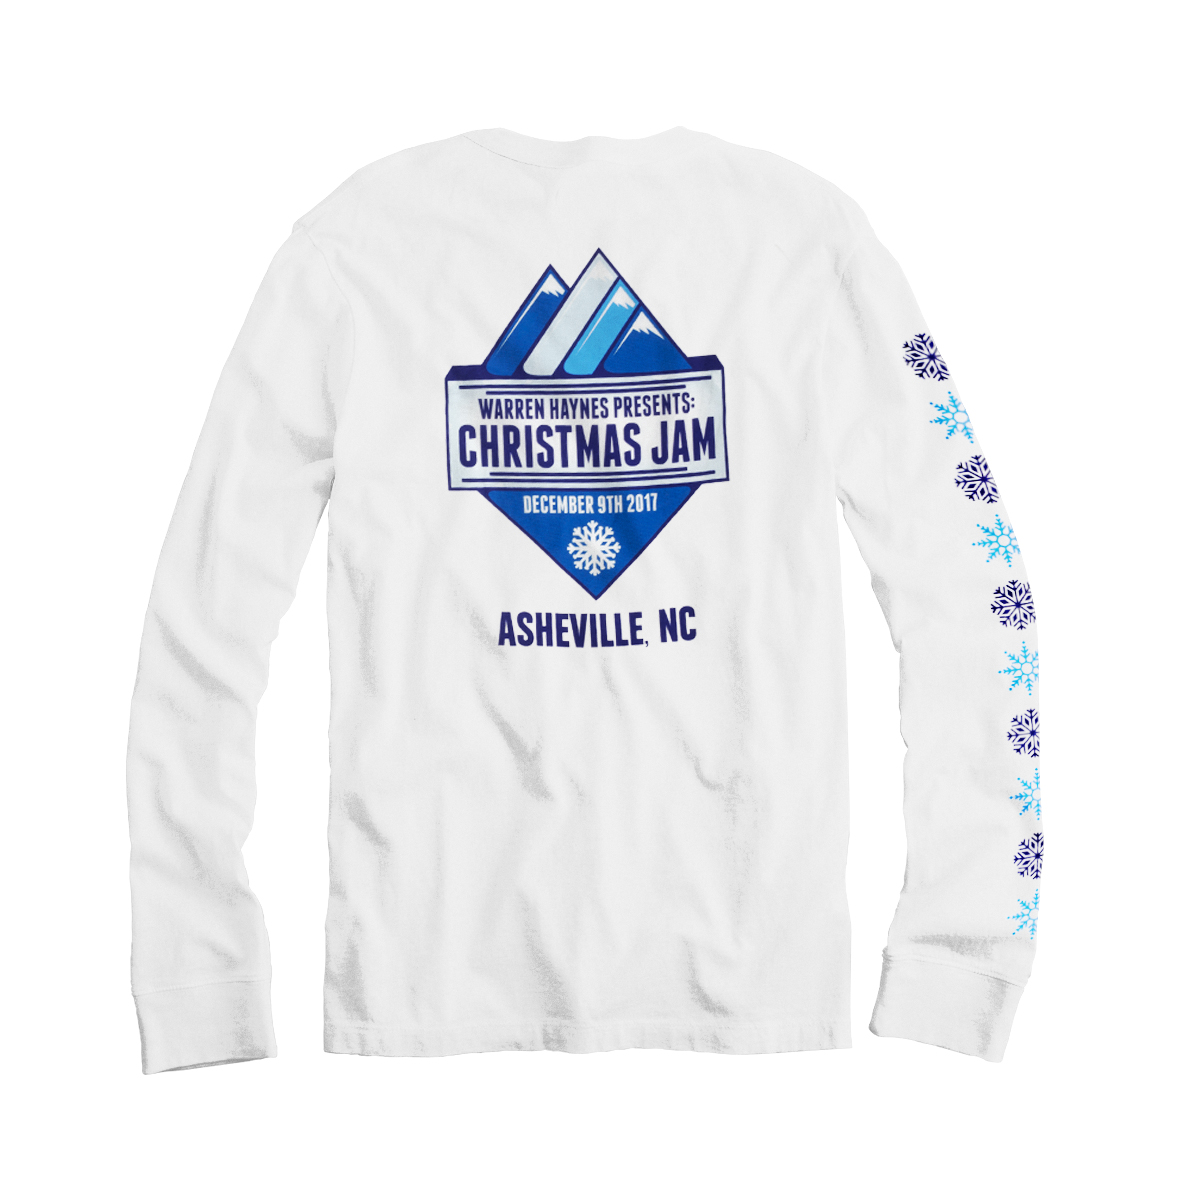 2017 Christmas Jam White Long Sleeve